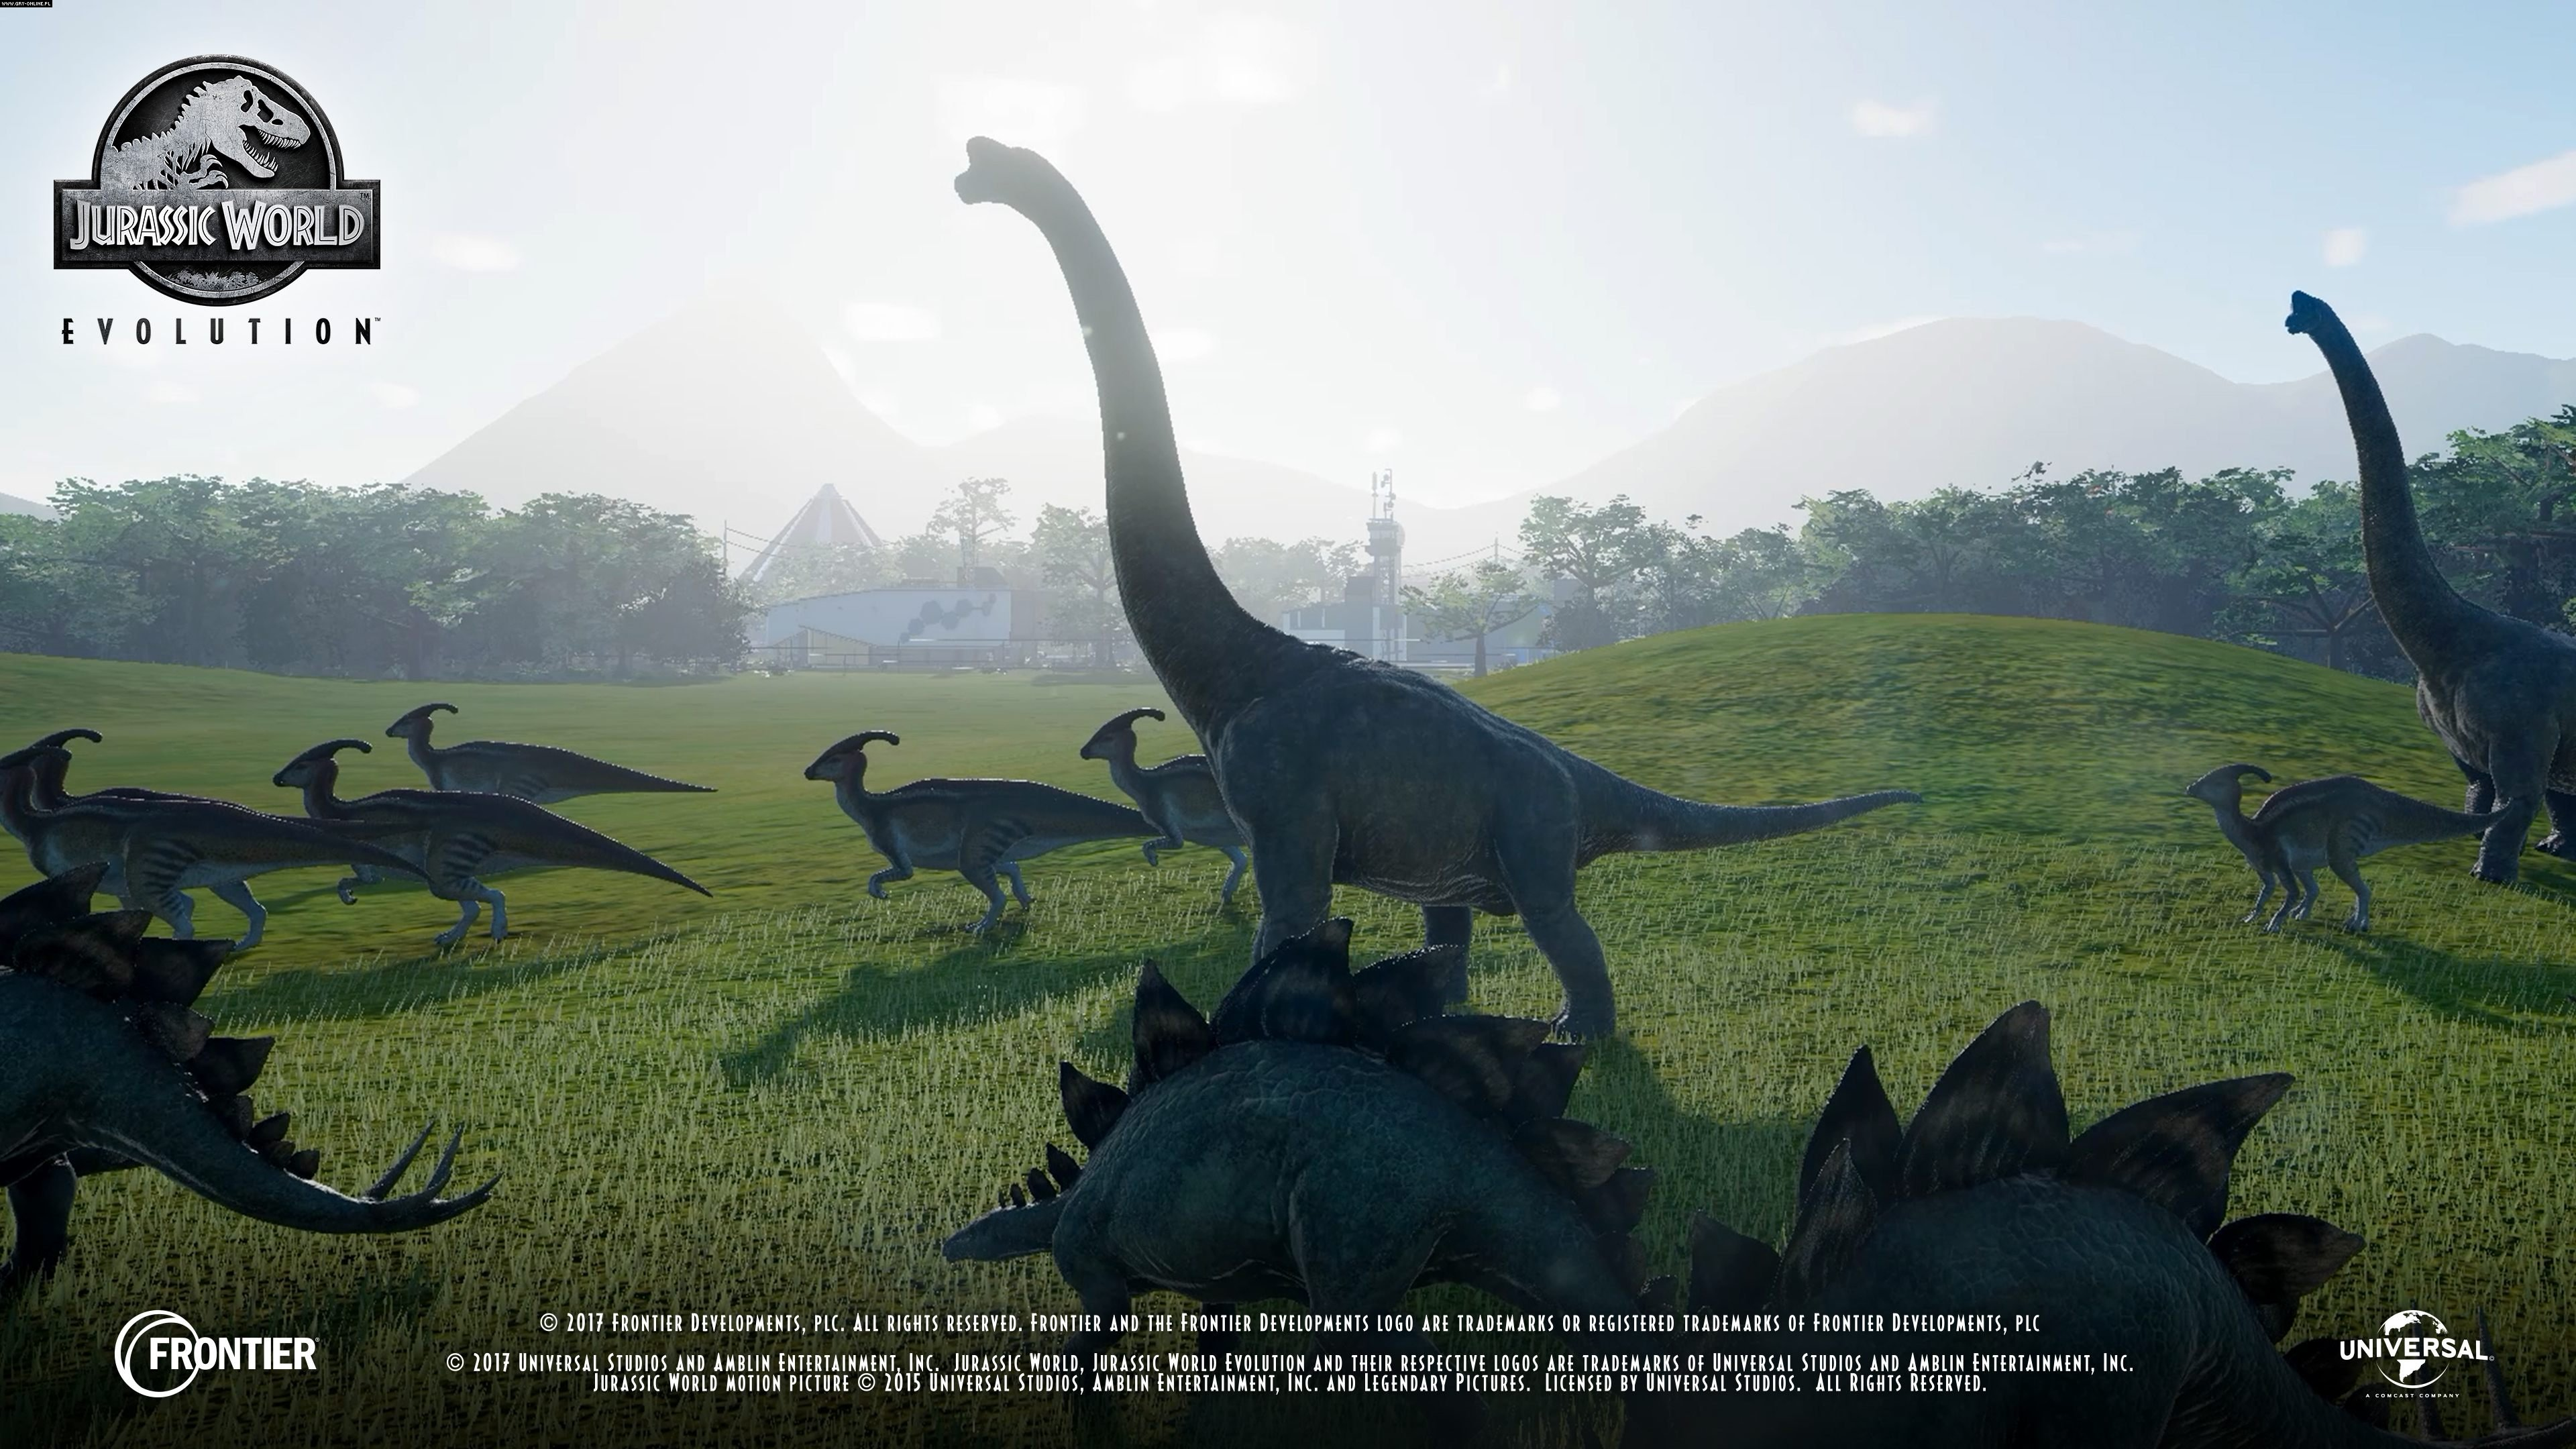 Jurassic world picture download game pc free full version